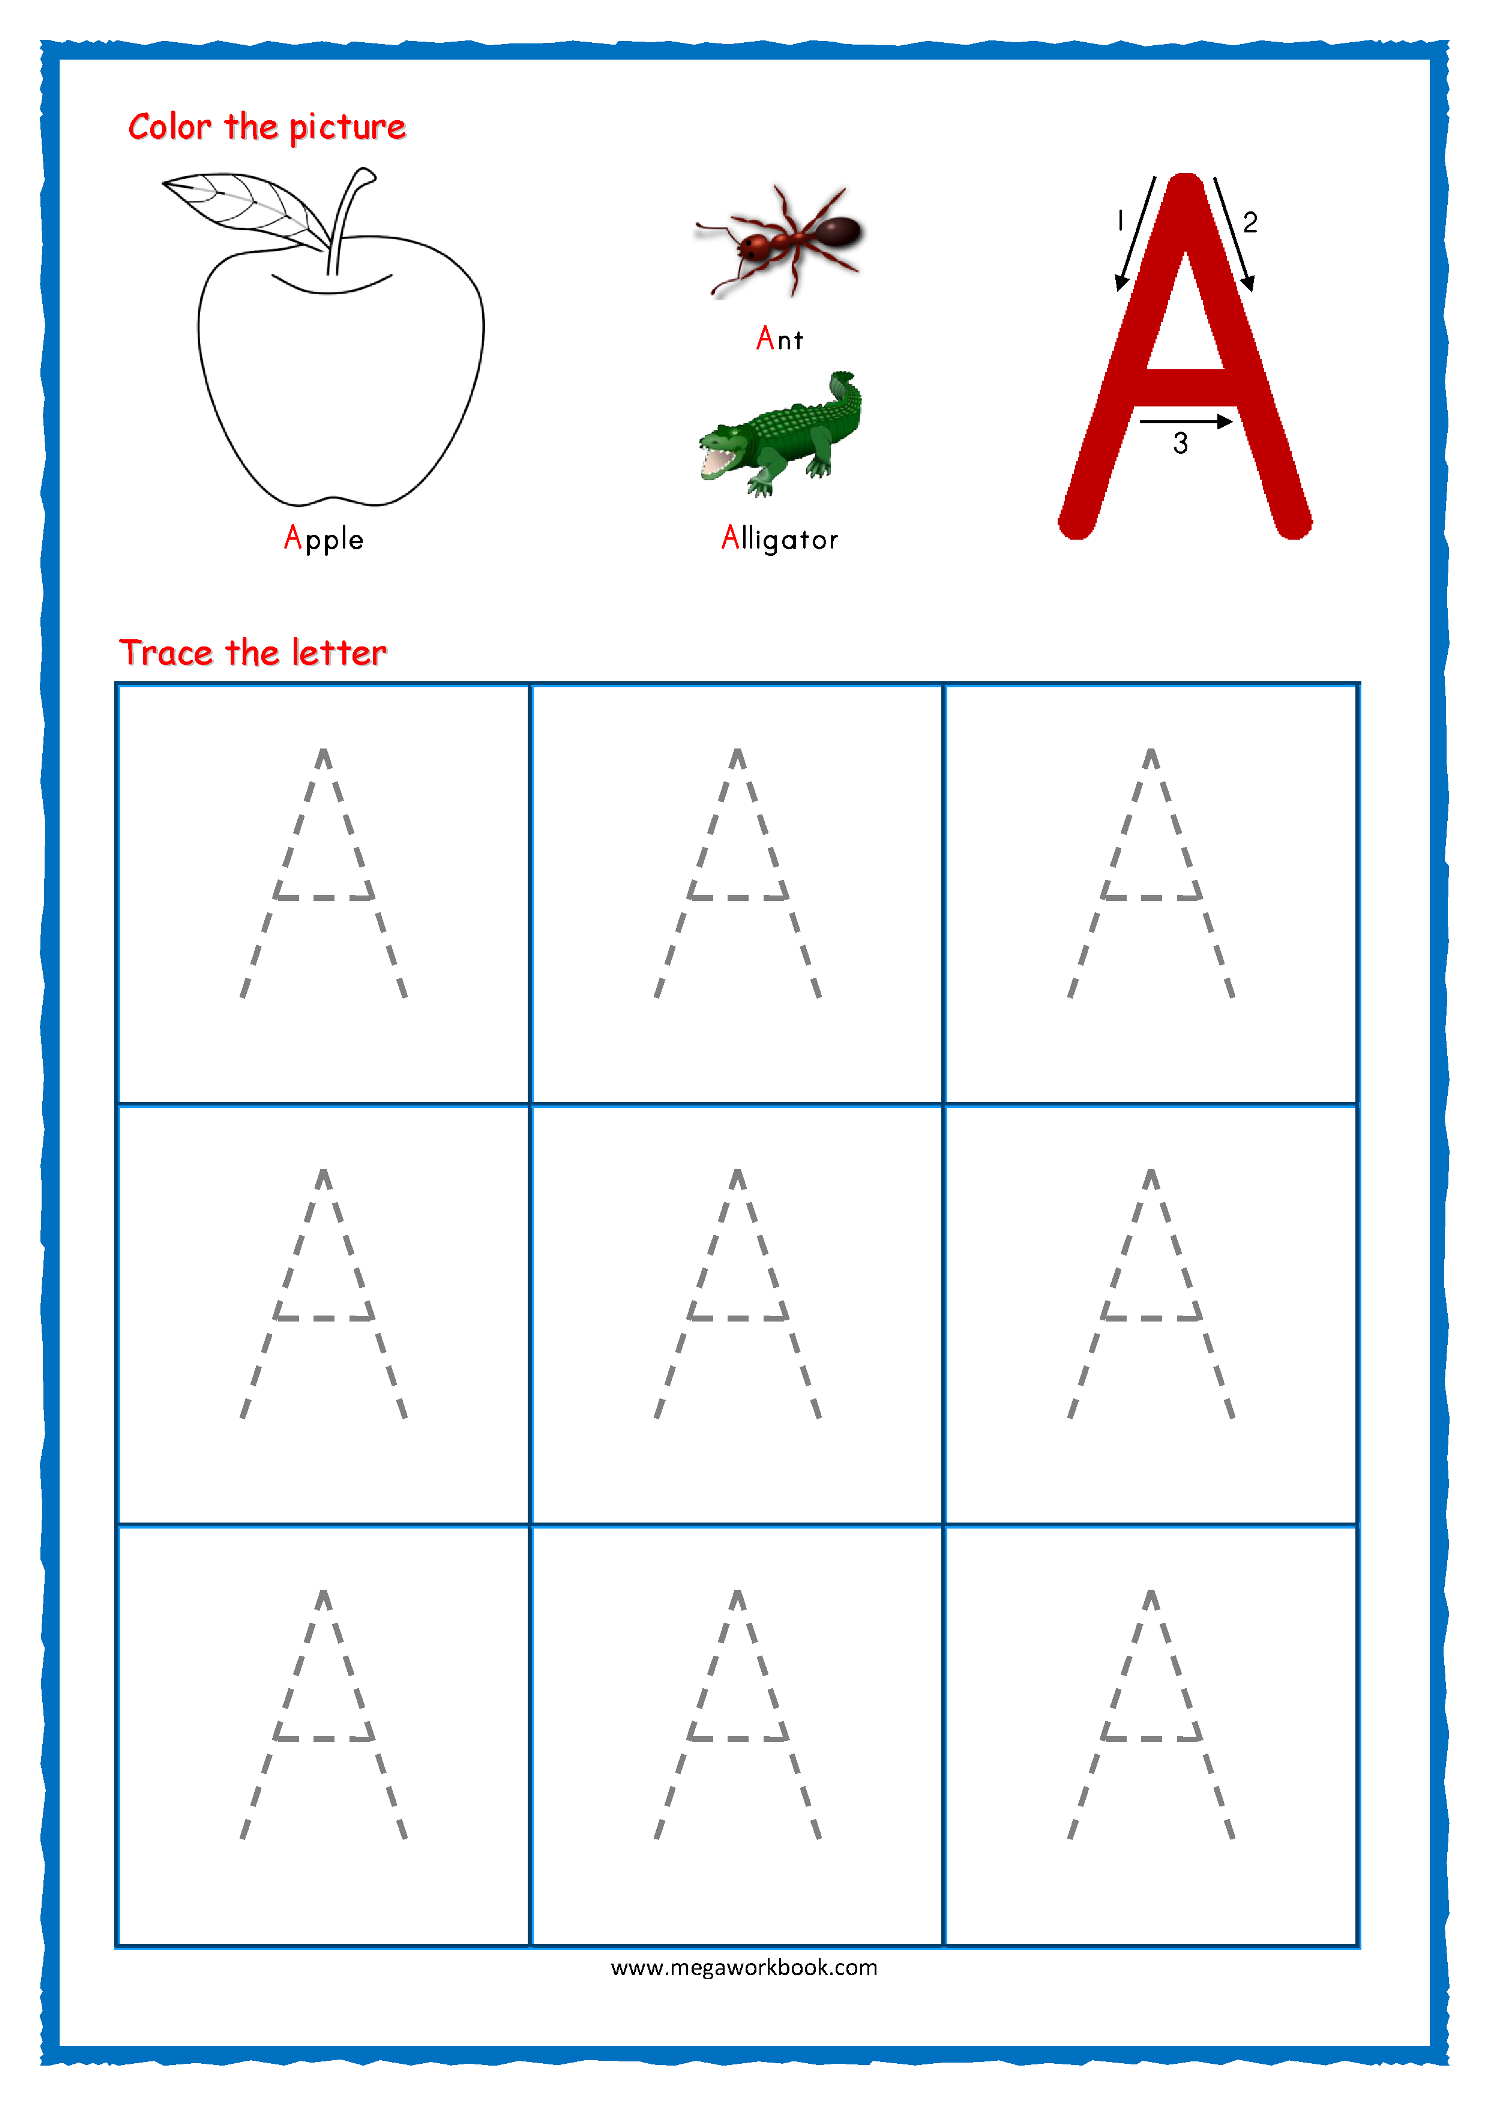 Tracing Letters - Alphabet Tracing - Capital Letters with Alphabet Tracing Templates Free